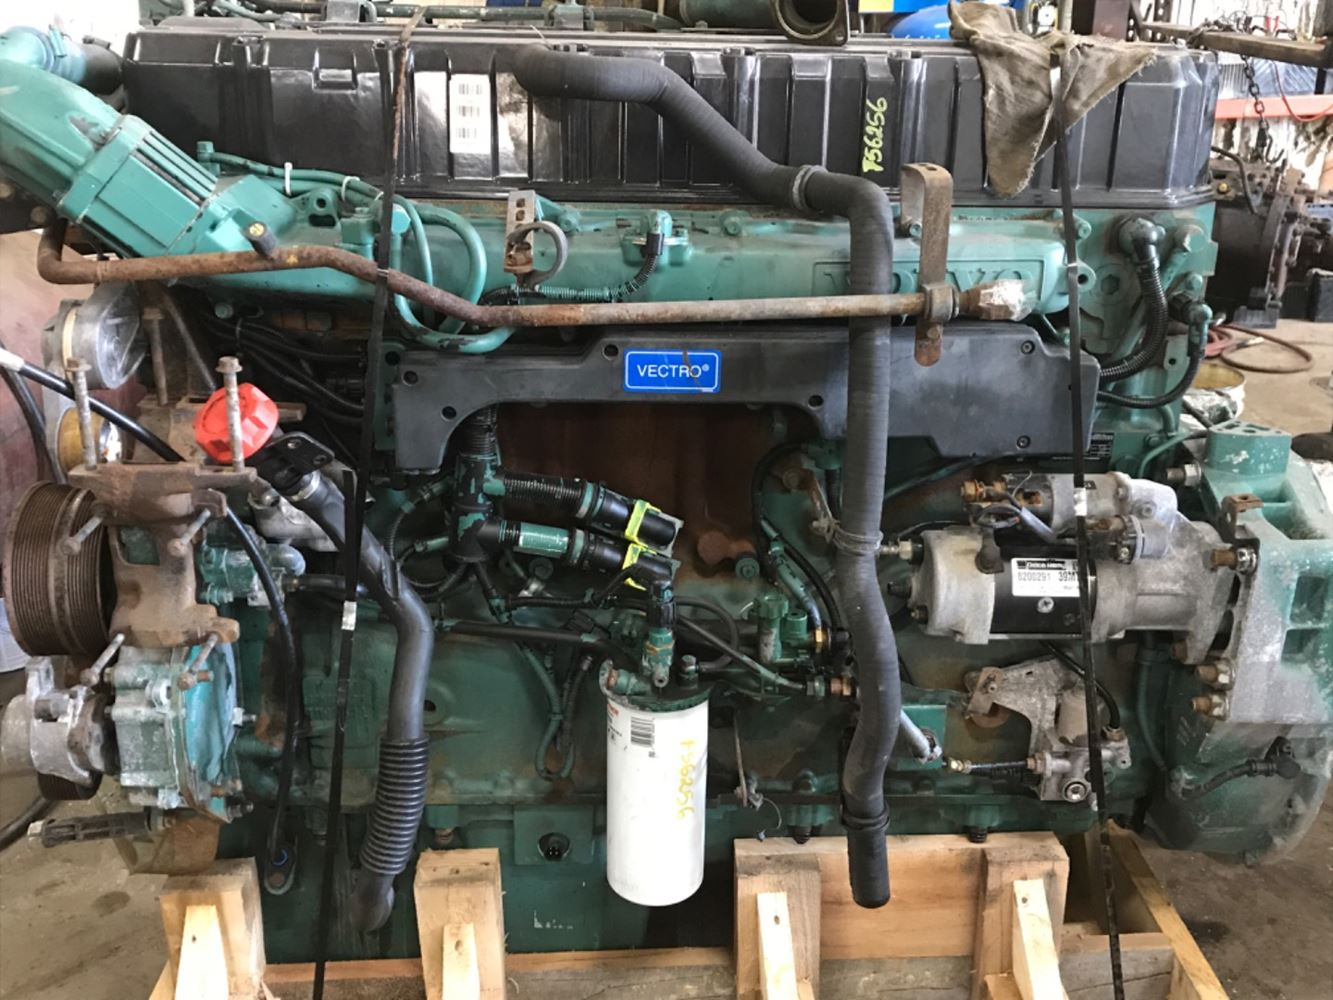 2006 VOLVO VE D12 ENGINE ASSEMBLY TRUCK PARTS #707175